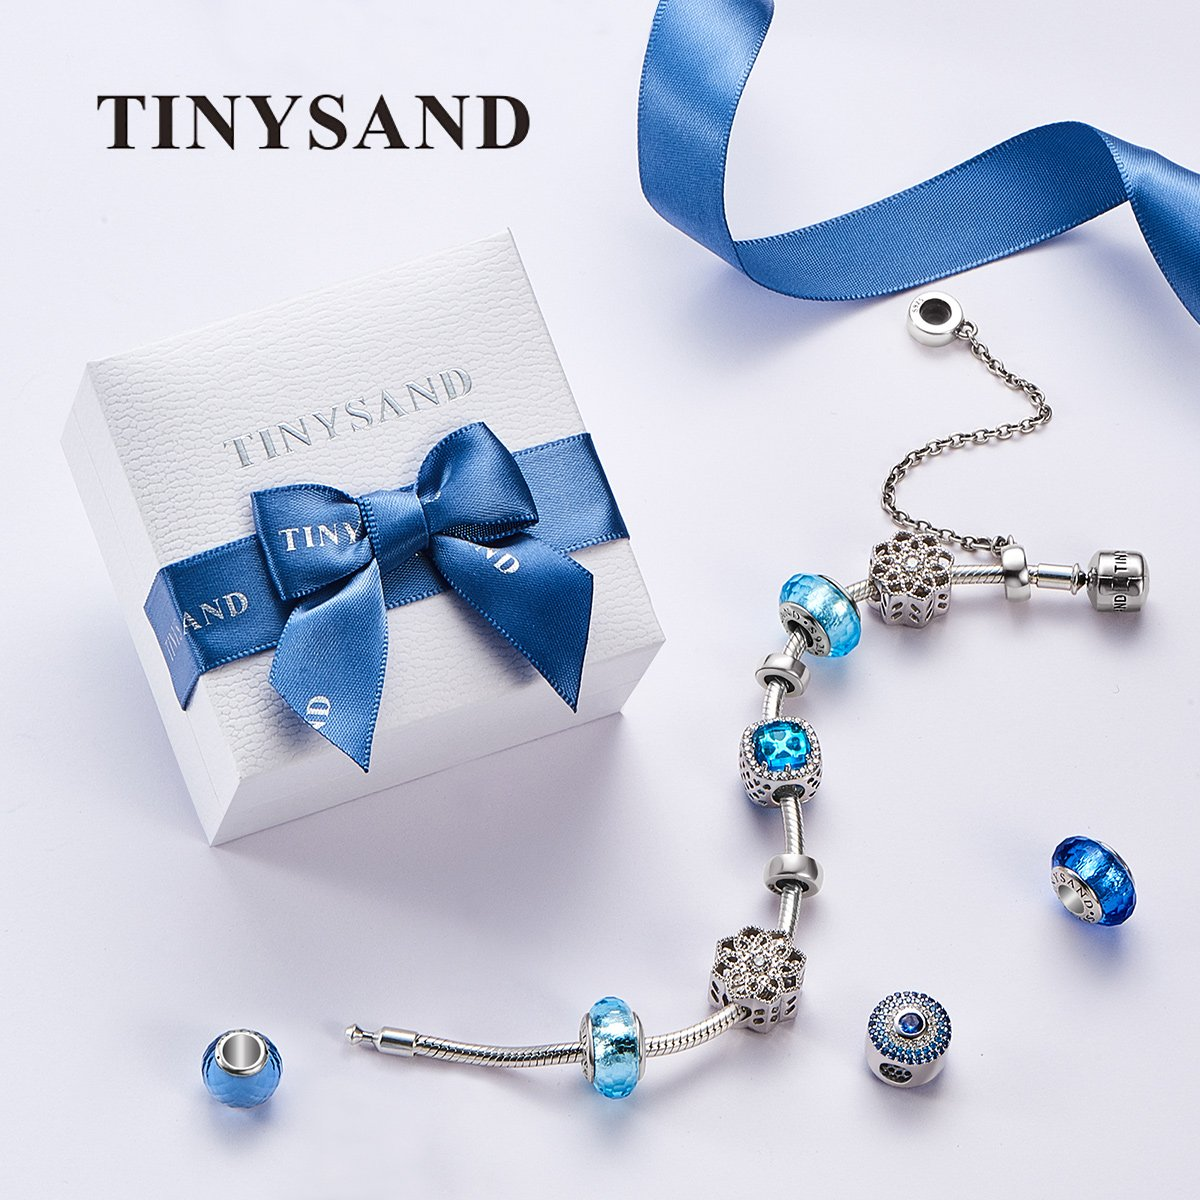 TINYSAND 925 Sterling Silver Dazzling CZ Clip Lock Stopper Spacers Charms Beads Fits European Snake Bracelet Bangle Unique Jewelry for Girls Women by TINYSAND (Image #6)